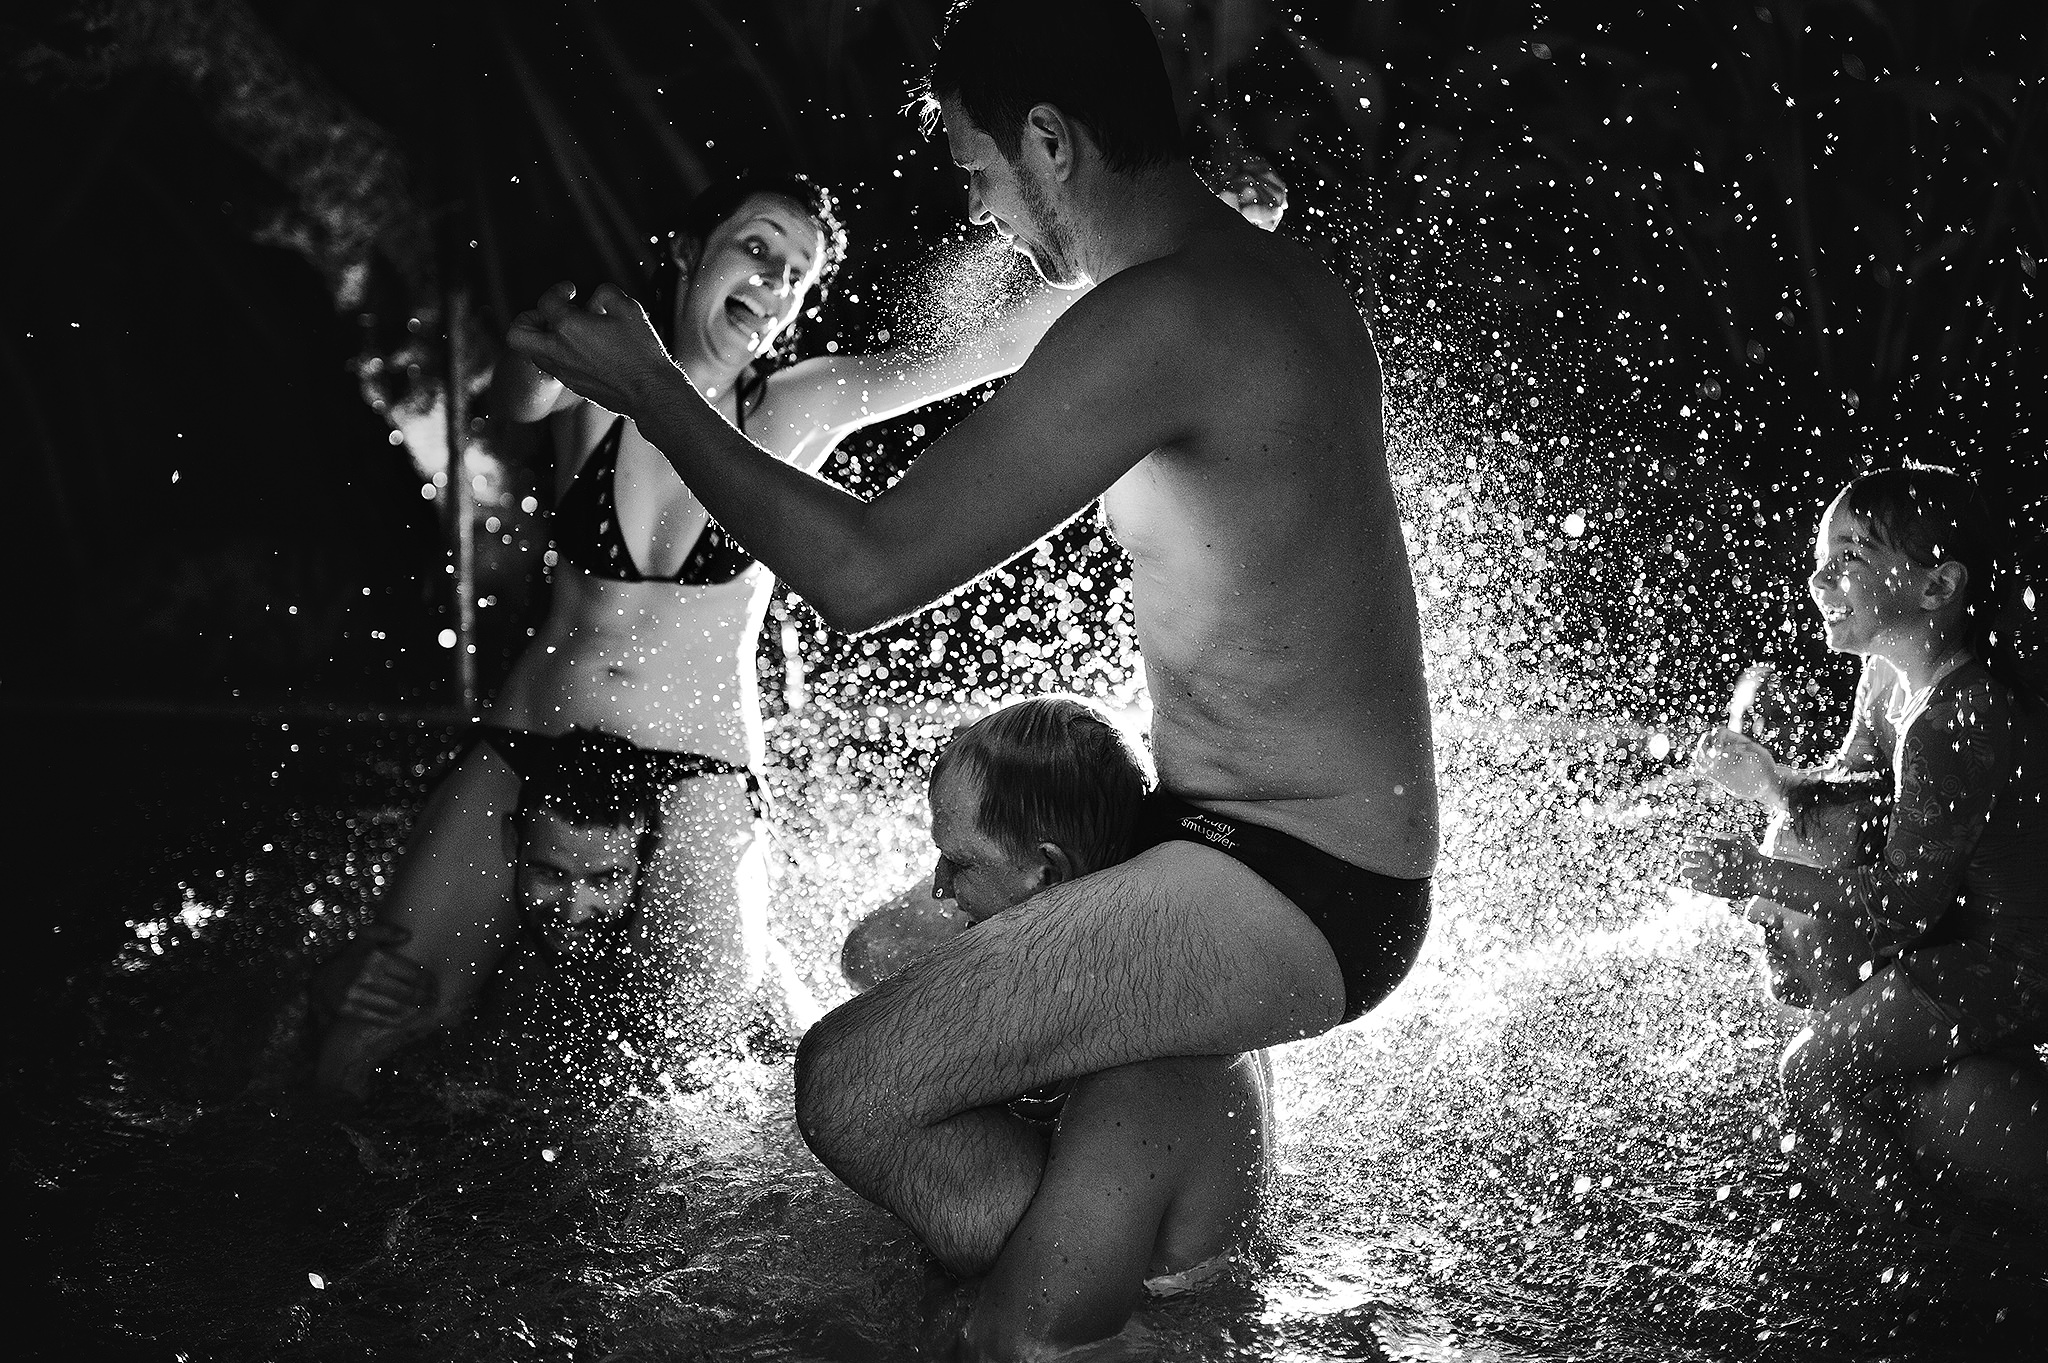 11 Documentary Moment Wedding in pool splashing epic backlit shot.JPG